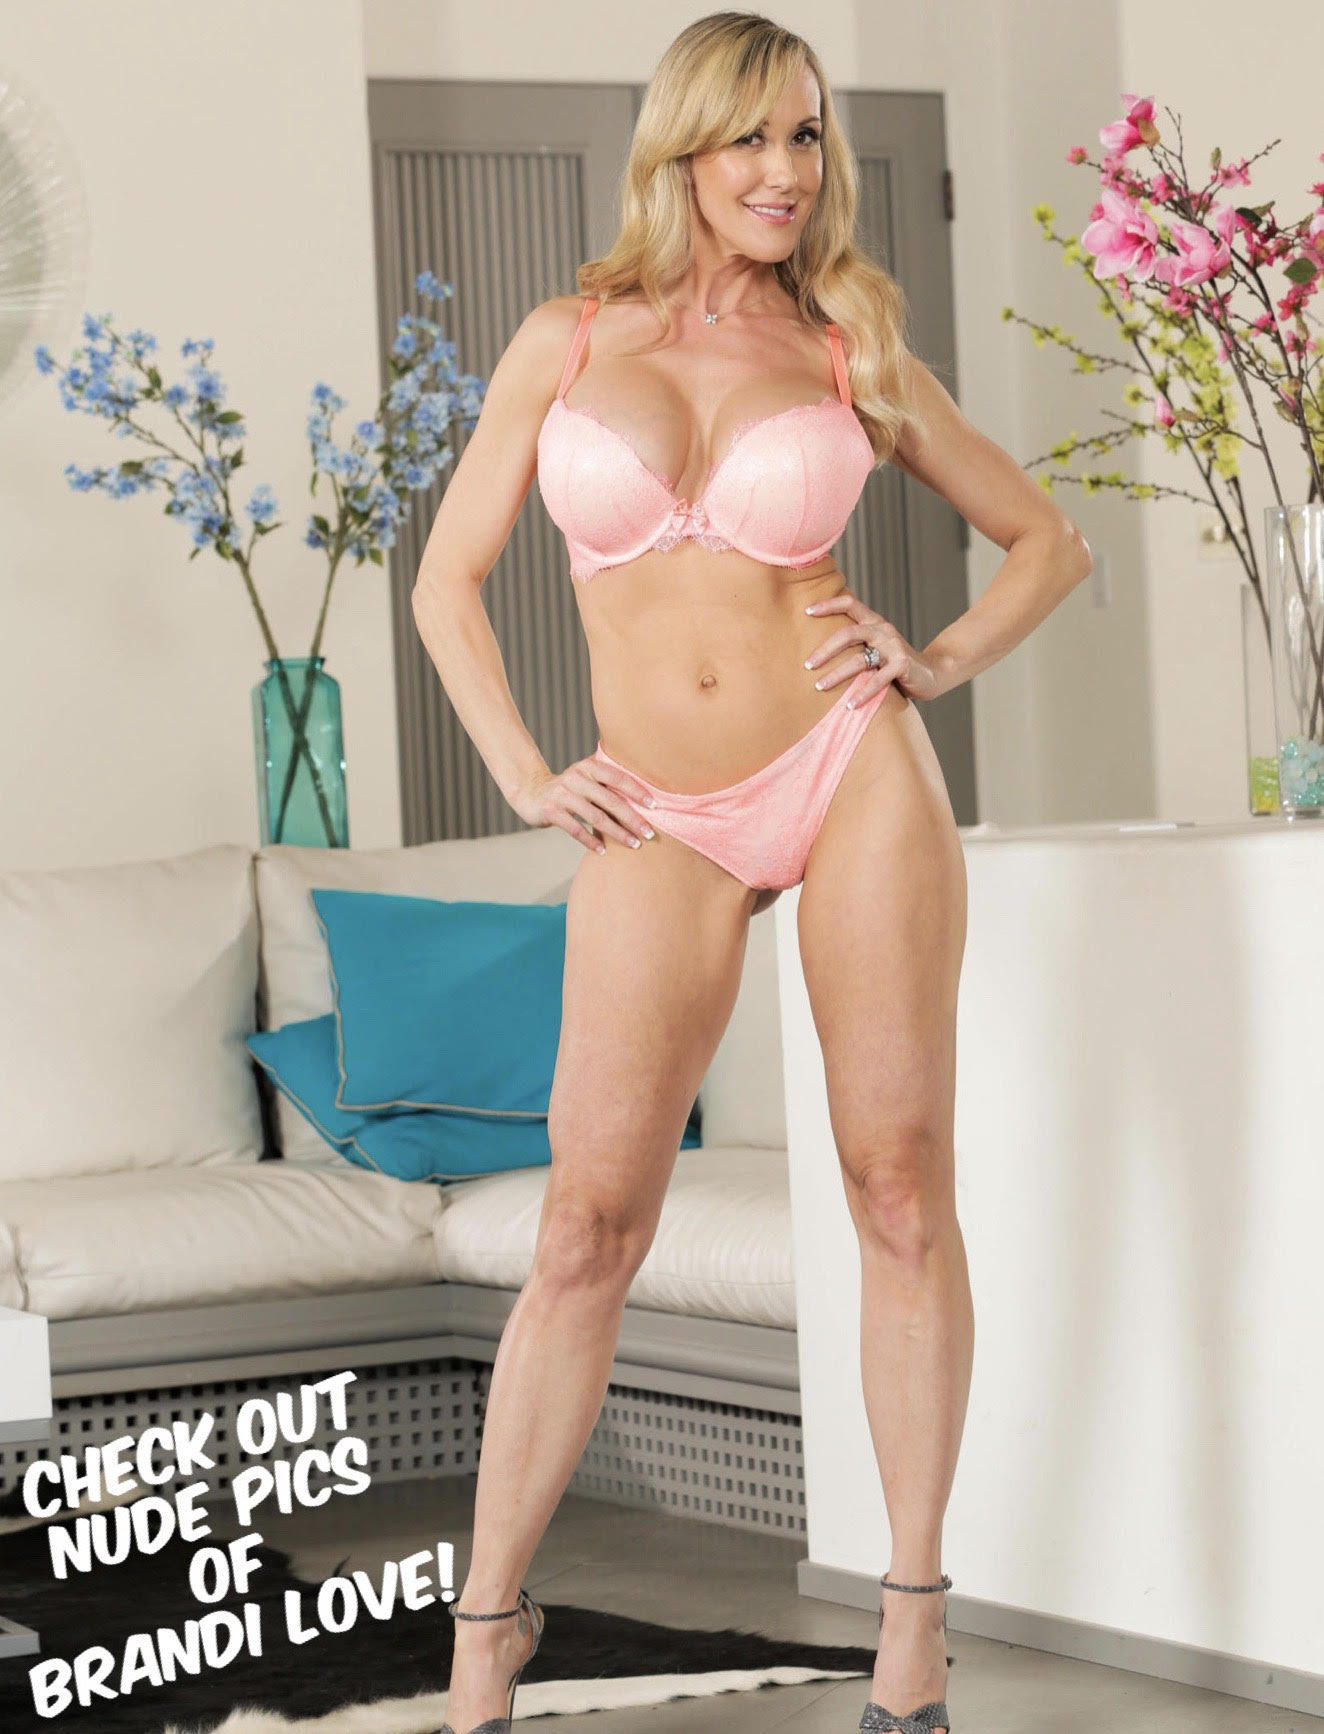 "alt=""Porn star Brandi love wearing lingerie"">"